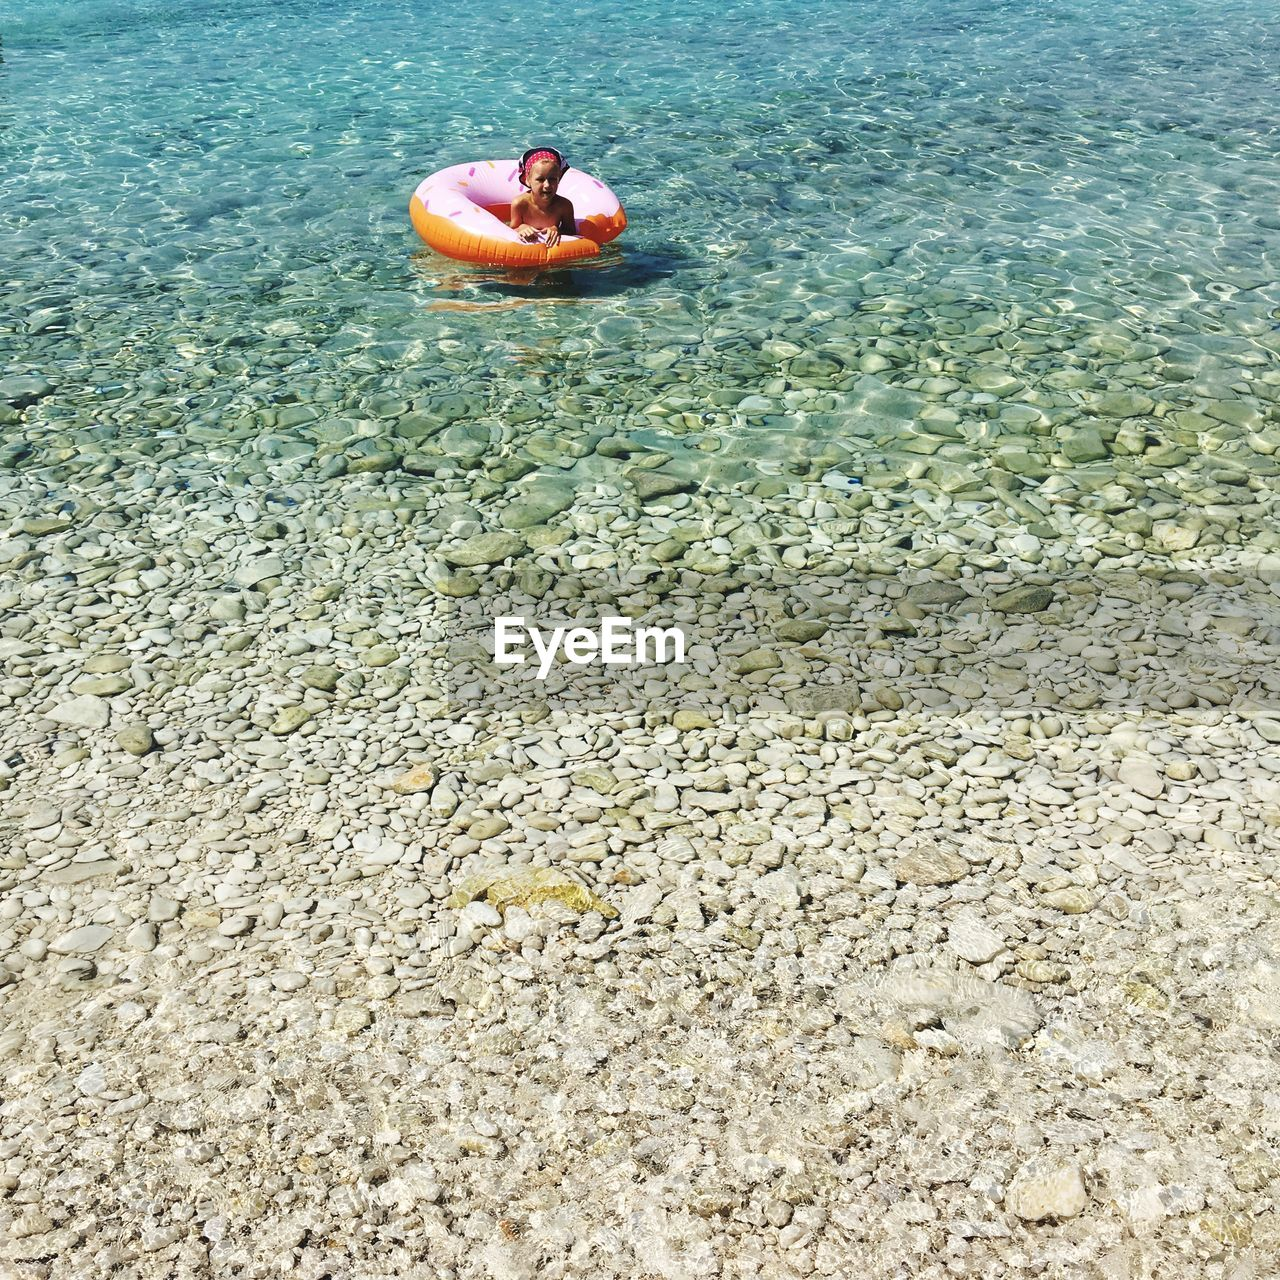 water, one person, real people, leisure activity, sea, lifestyles, nature, day, holiday, relaxation, high angle view, swimming, vacations, trip, waterfront, beauty in nature, beach, tranquility, outdoors, inflatable, floating on water